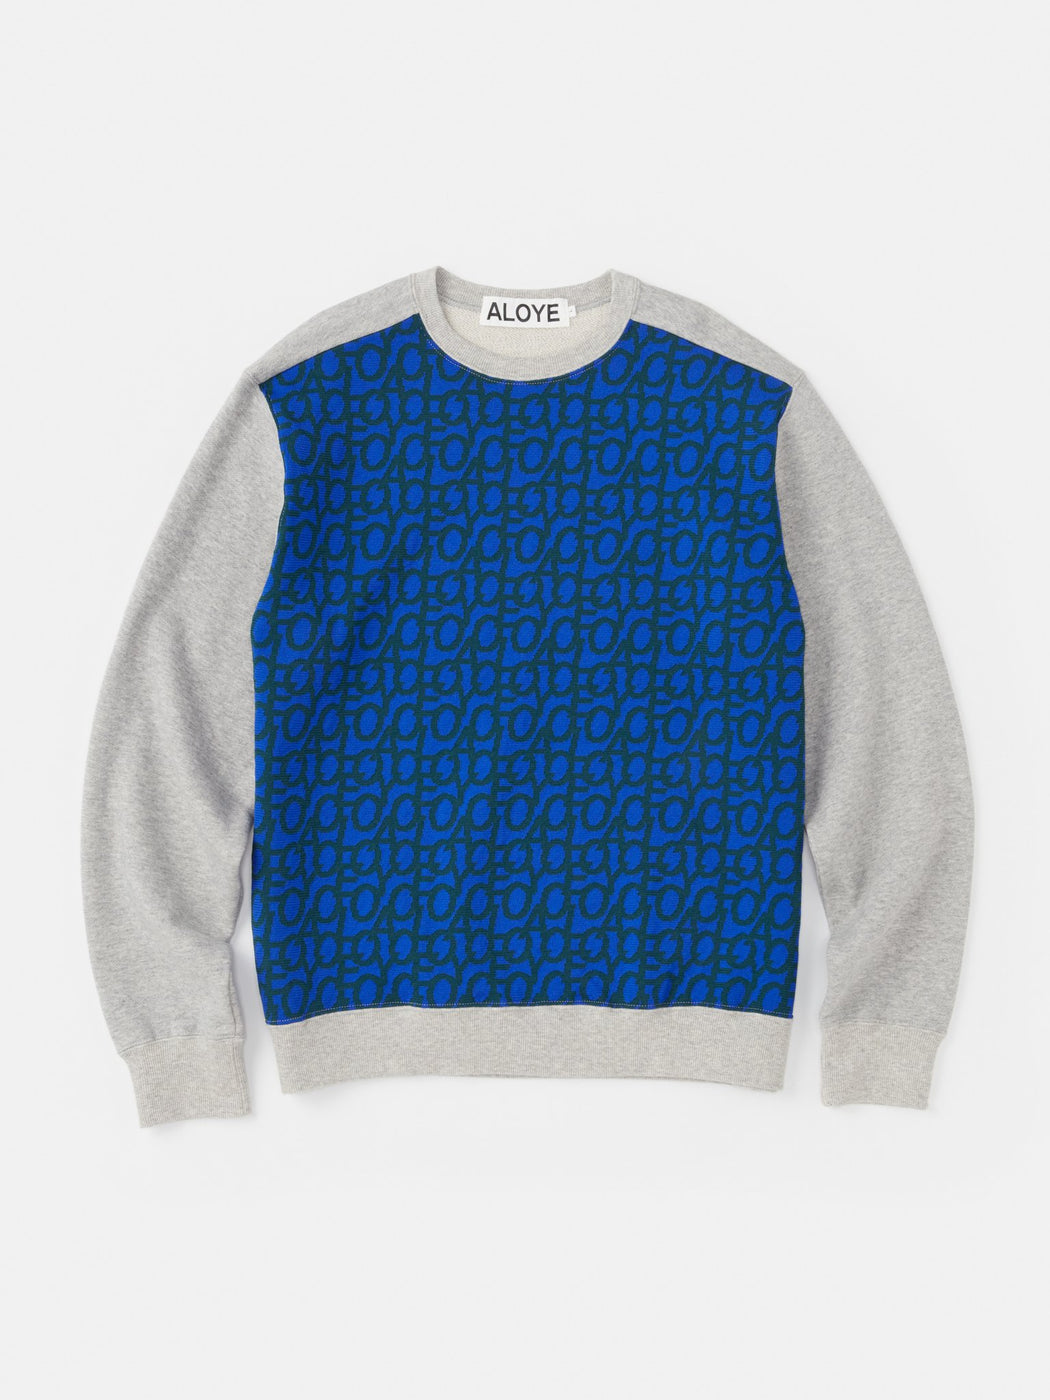 ALOYE Takahashi Knit Sweatshirt Heather Gray